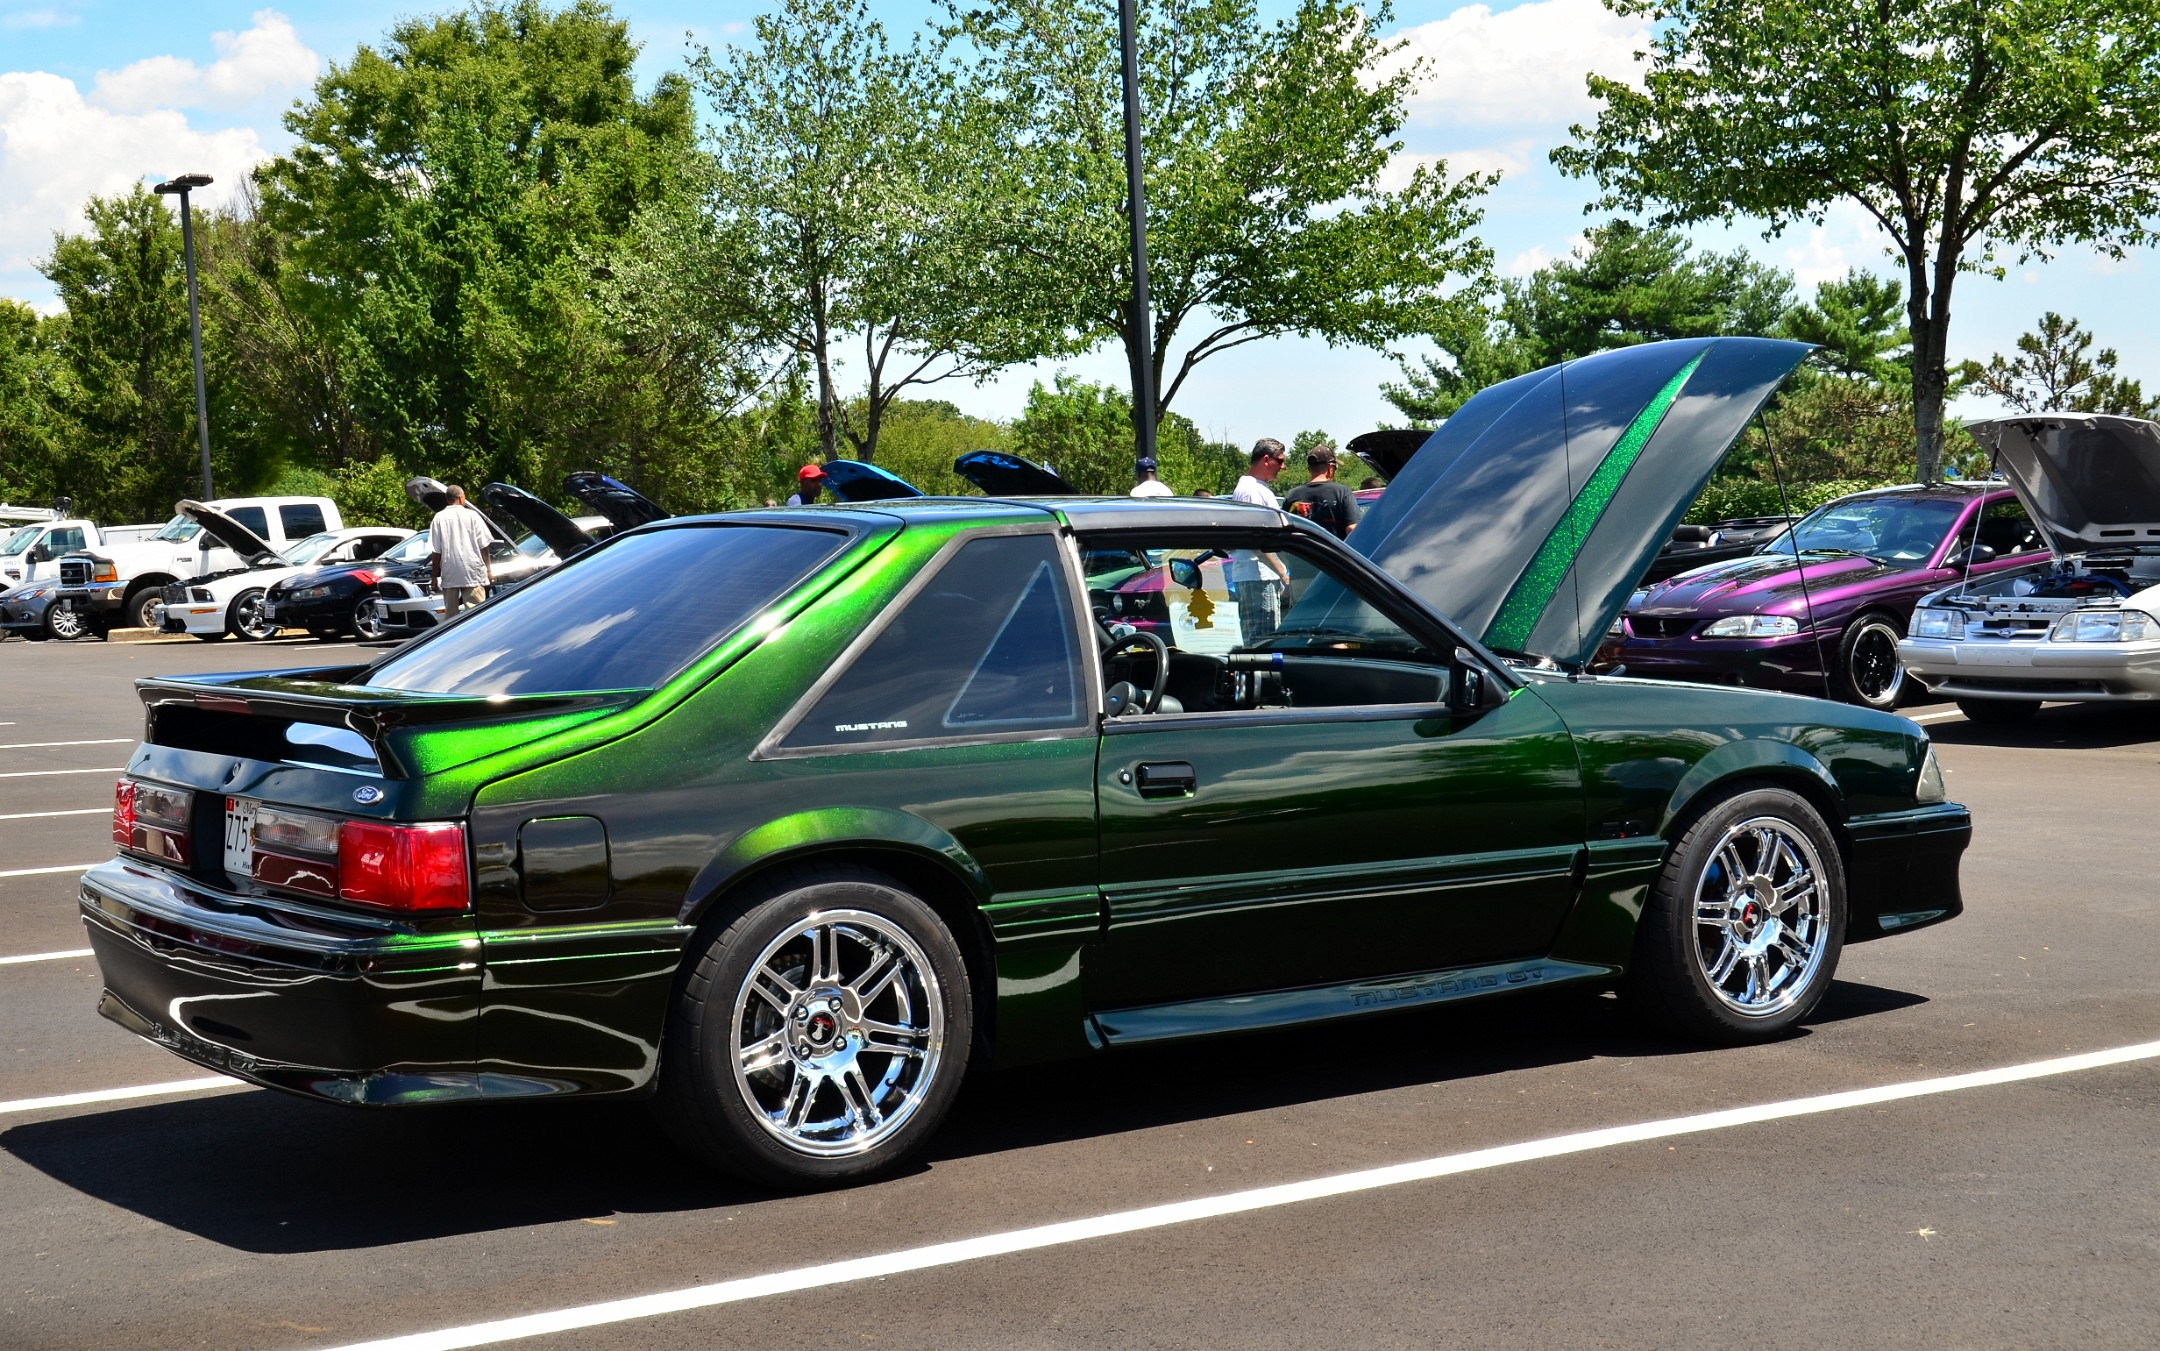 1987 Mustang Gt With Two Tone Paint